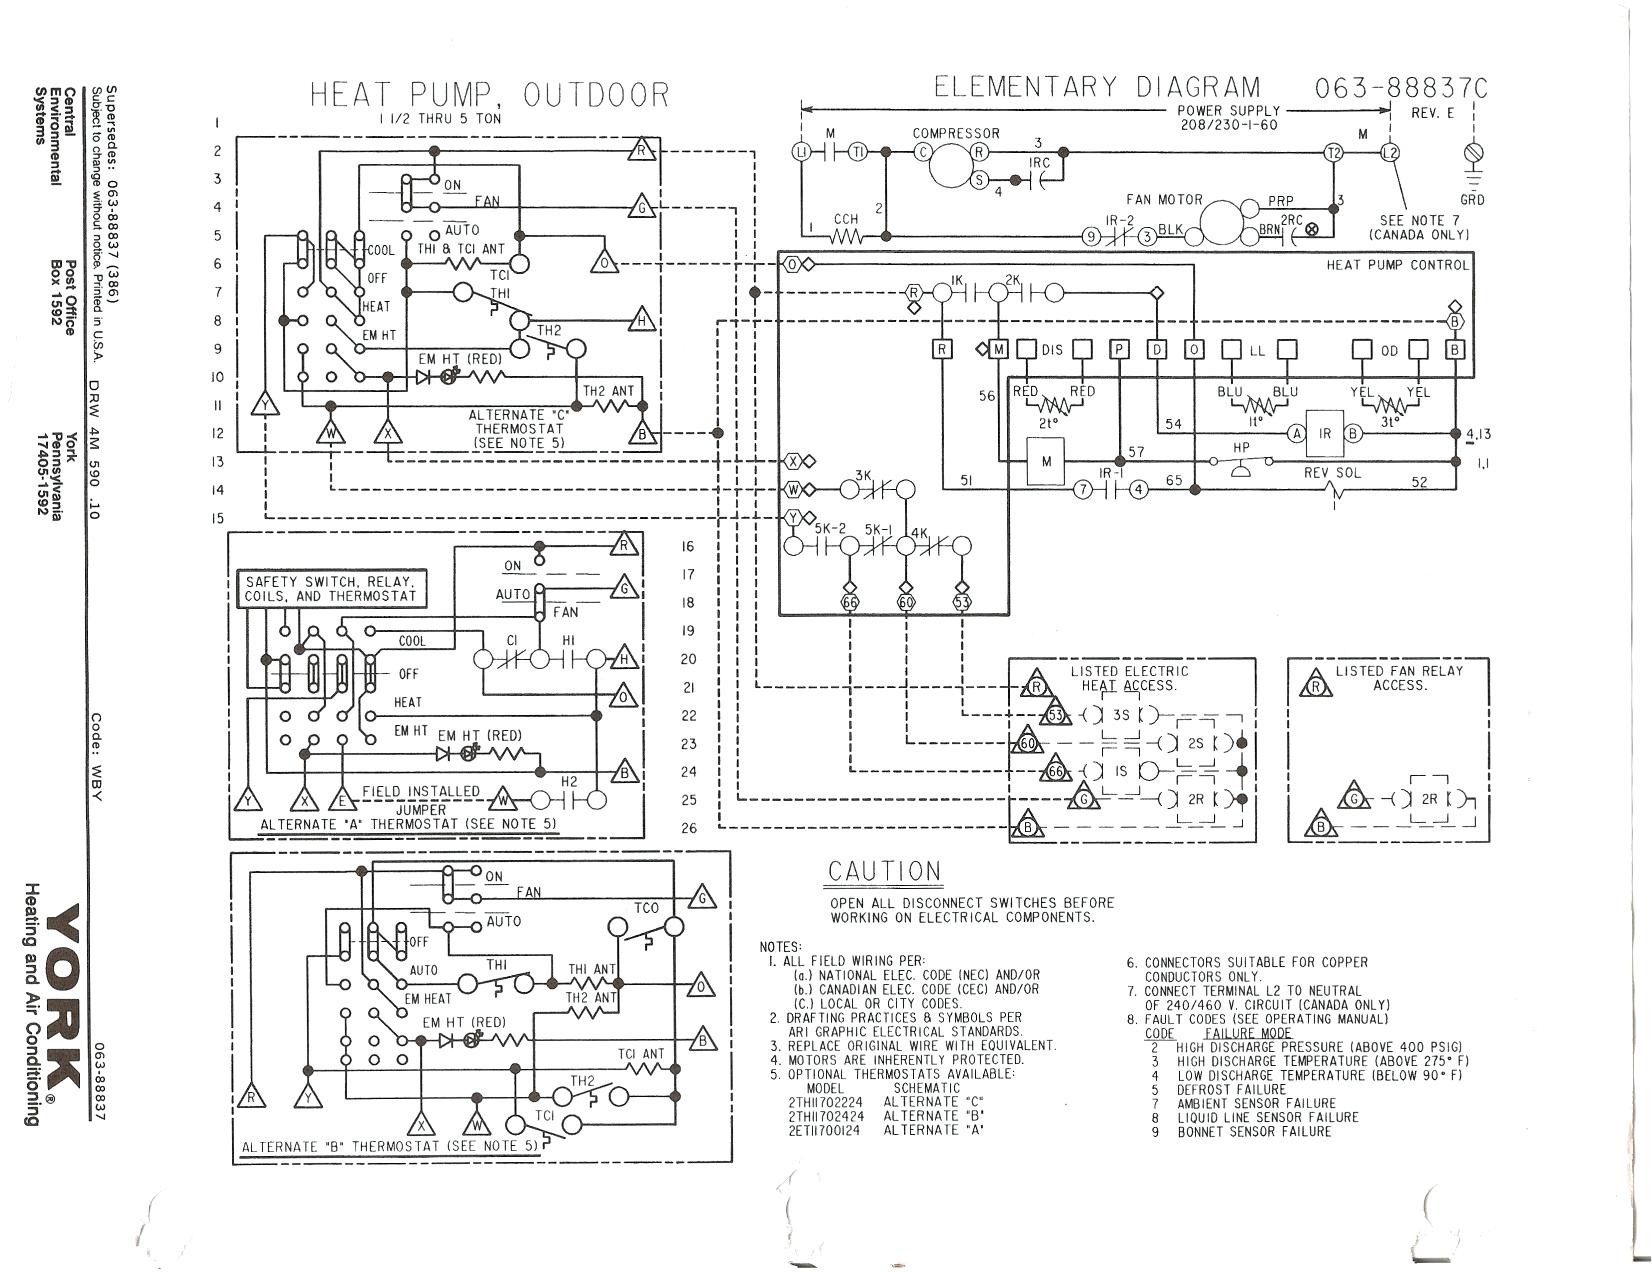 Hk 10 wire diagram heat strip wiring diagrams schematics outstanding strip heaters wja1002 gallery electrical diagram ideas basic heat pump wiring diagram electric heat strip diagram fancy goodman heat strip asfbconference2016 Image collections